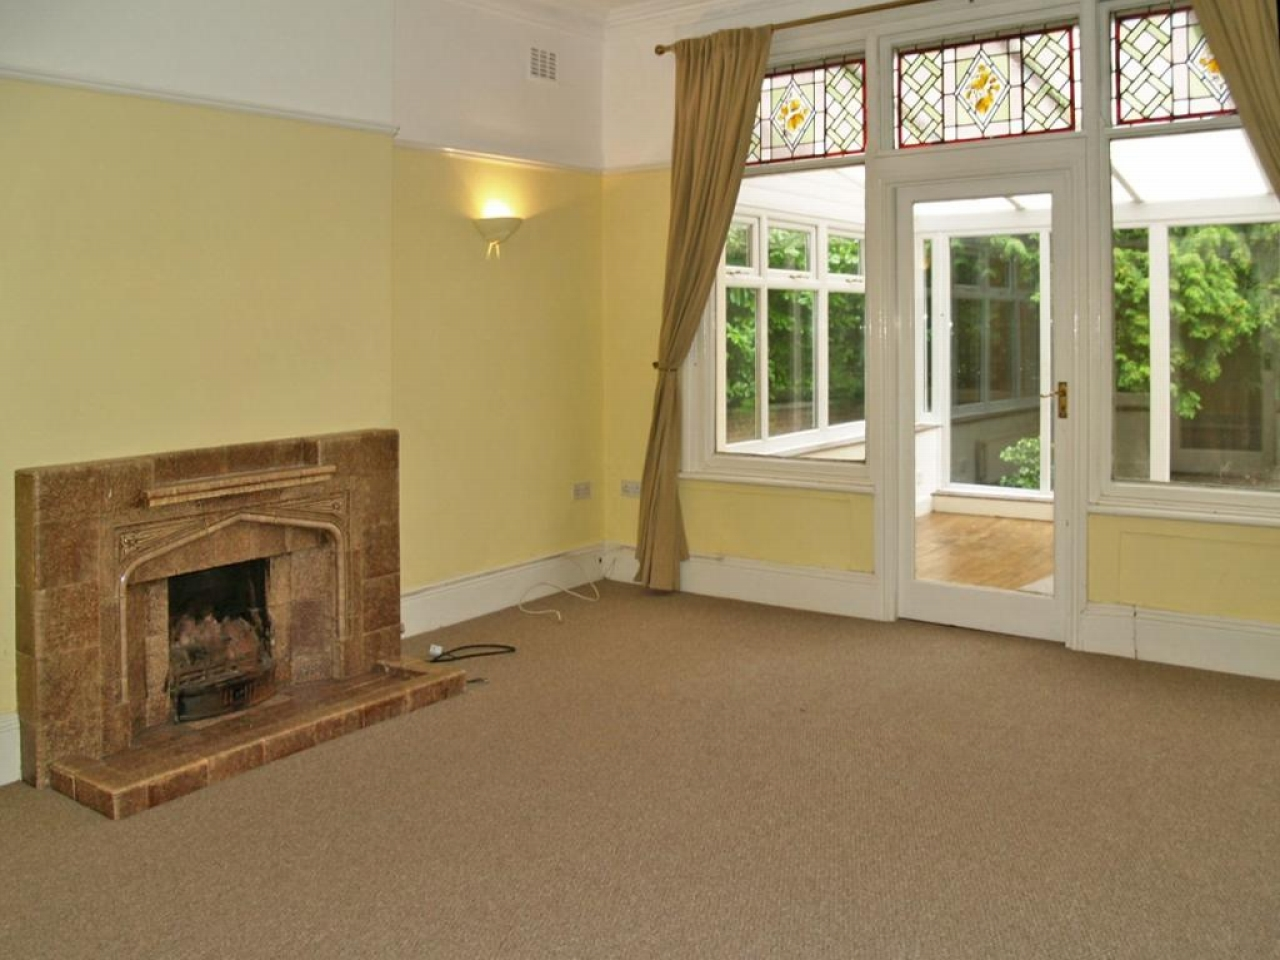 5 bedroom detached house SSTC in Solihull - photograph 5.